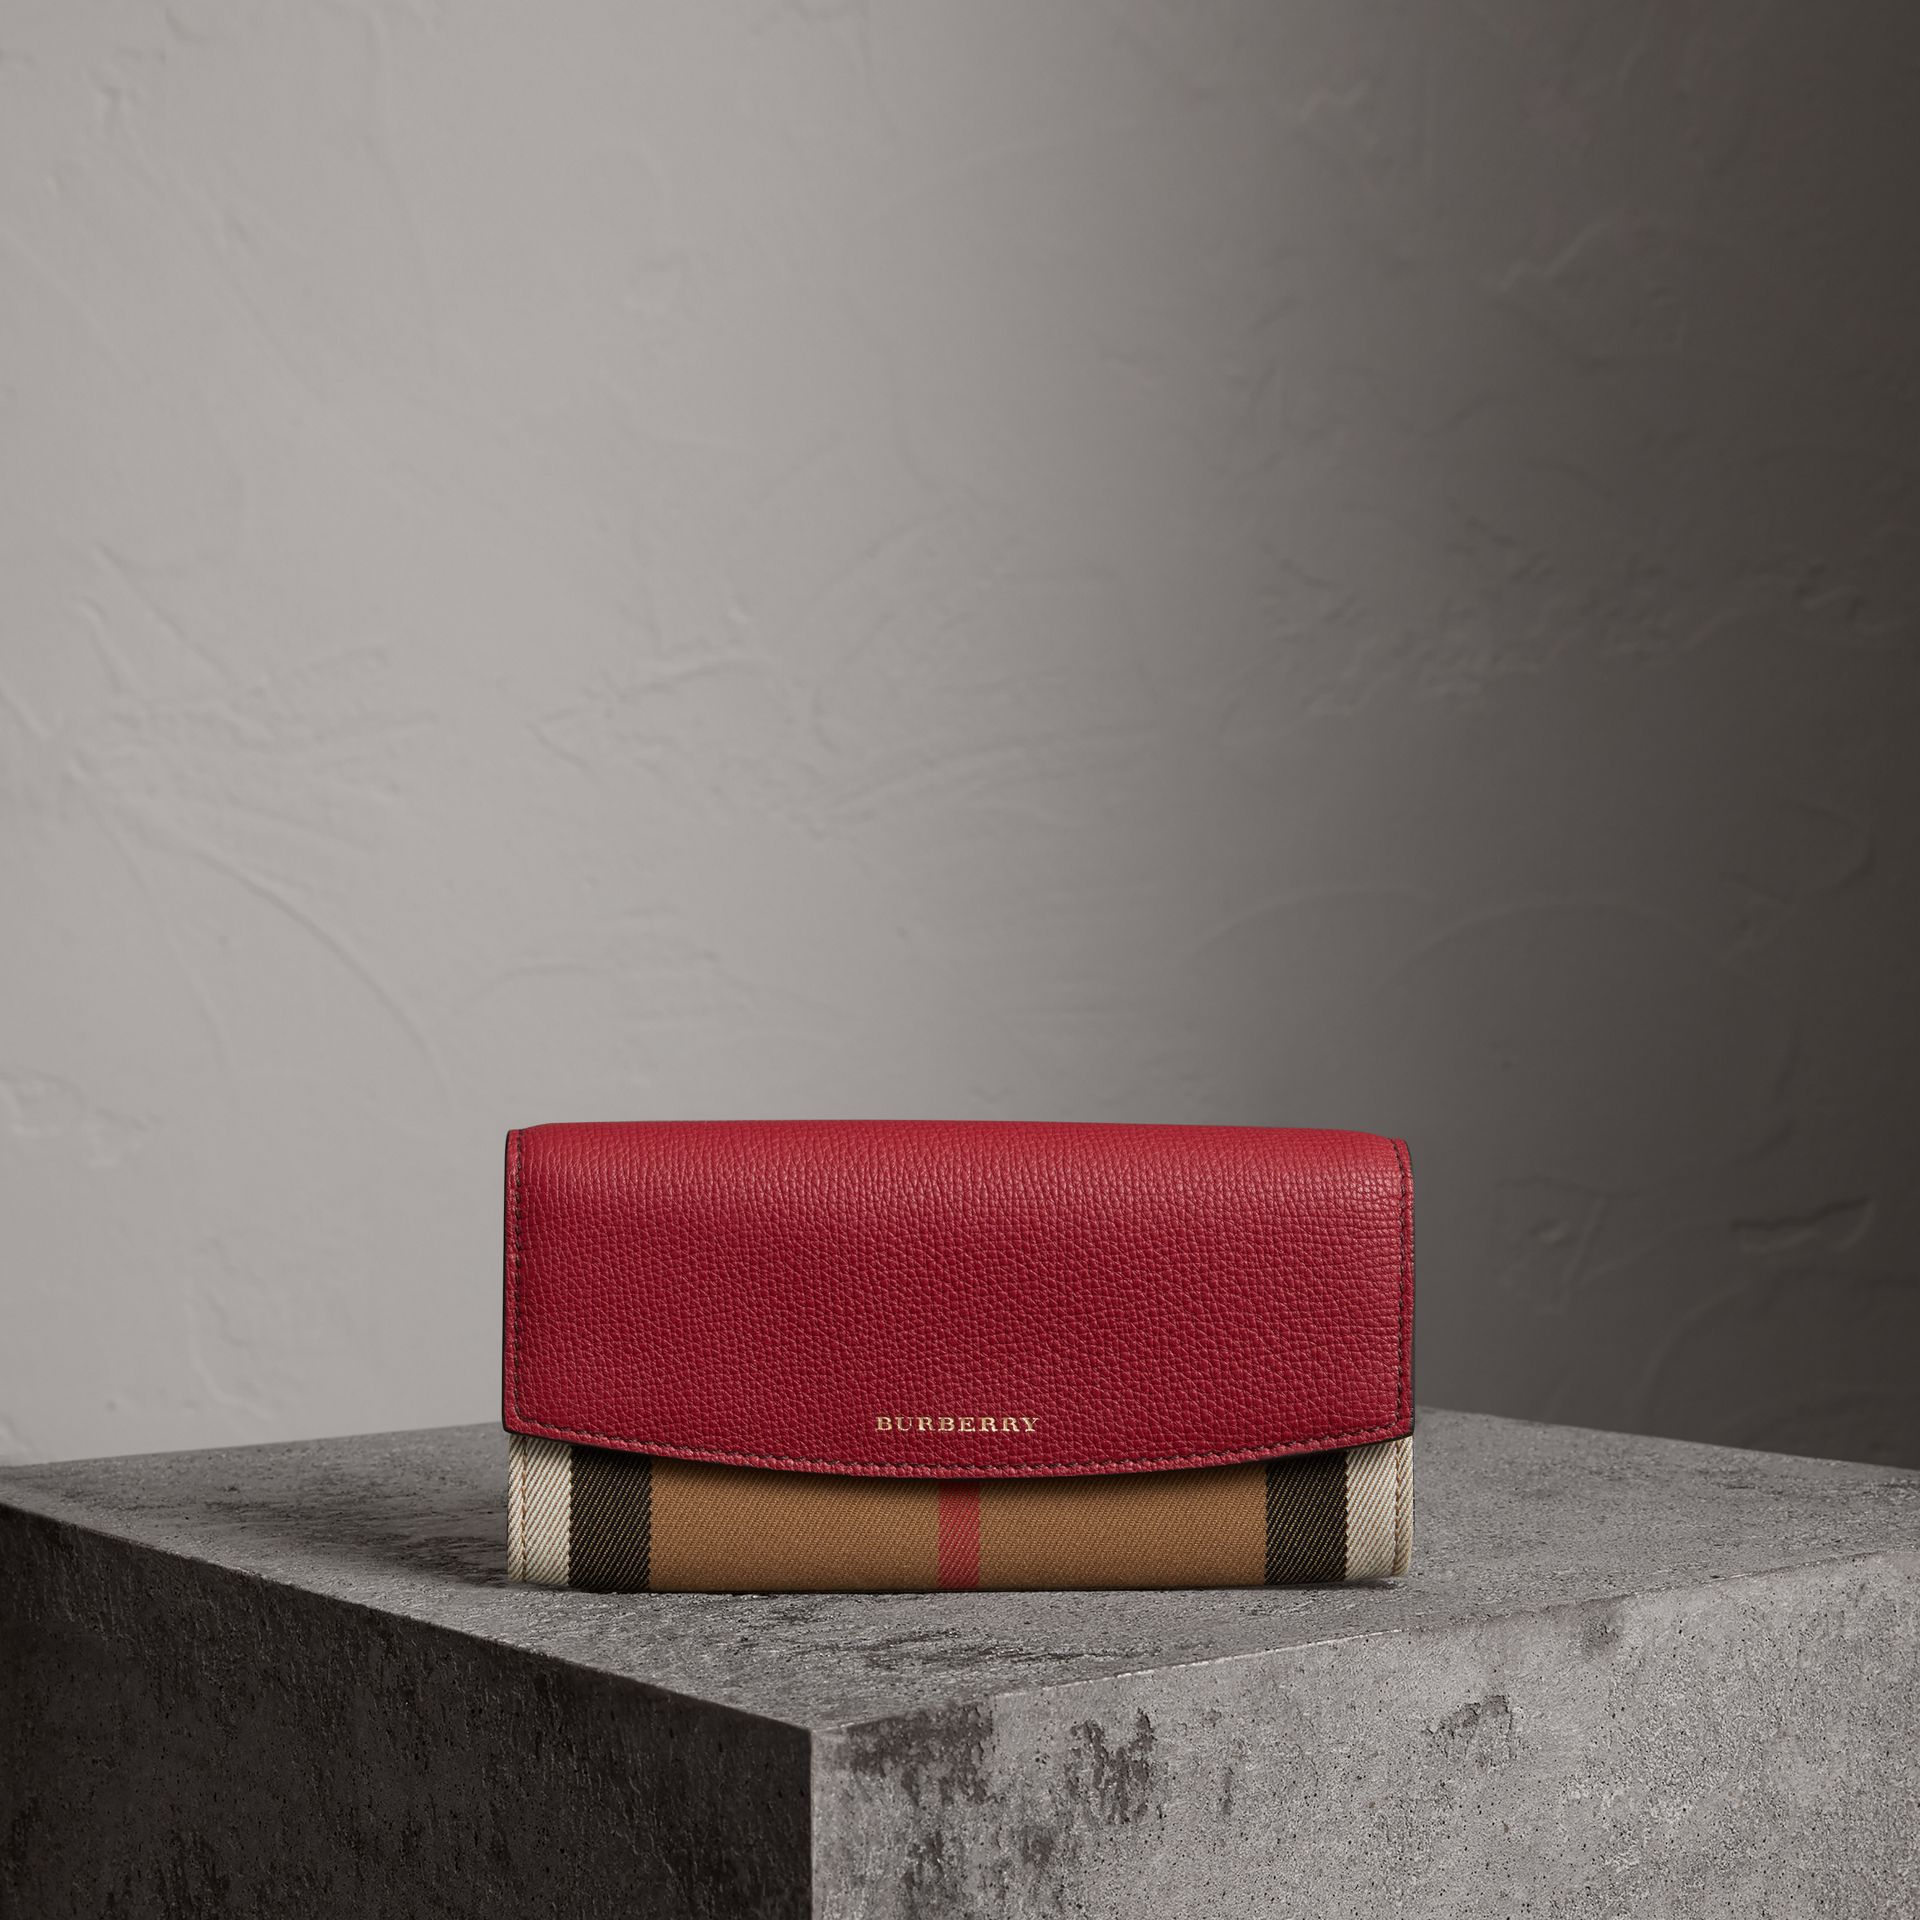 Portefeuille continental en coton House check et cuir (Rouge Feuille Morte) - Femme | Burberry Canada - photo de la galerie 0